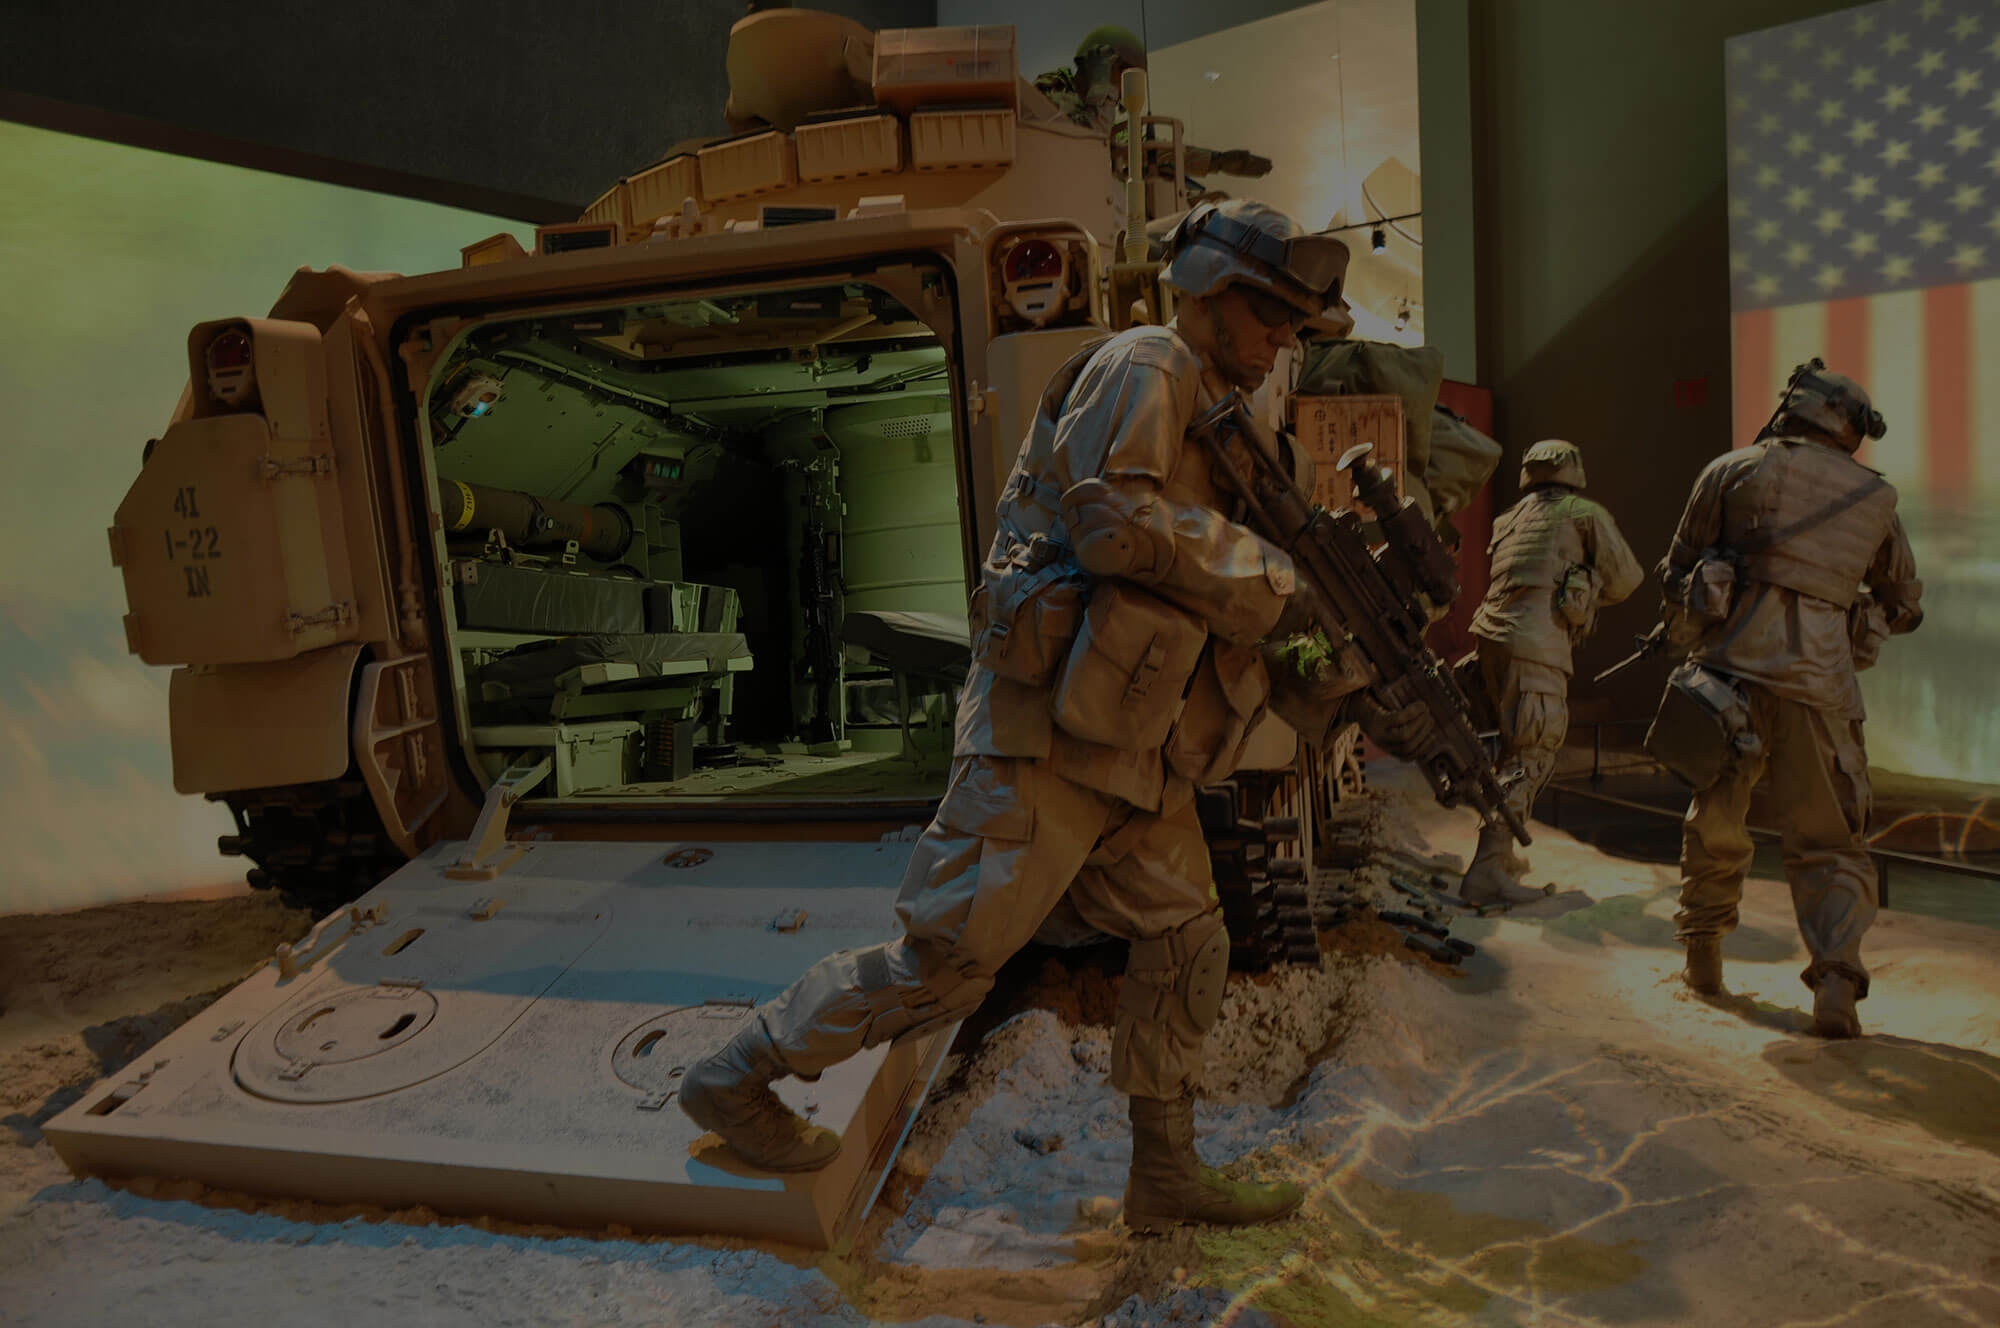 Interactive Exhibits At The National Infantry Museum